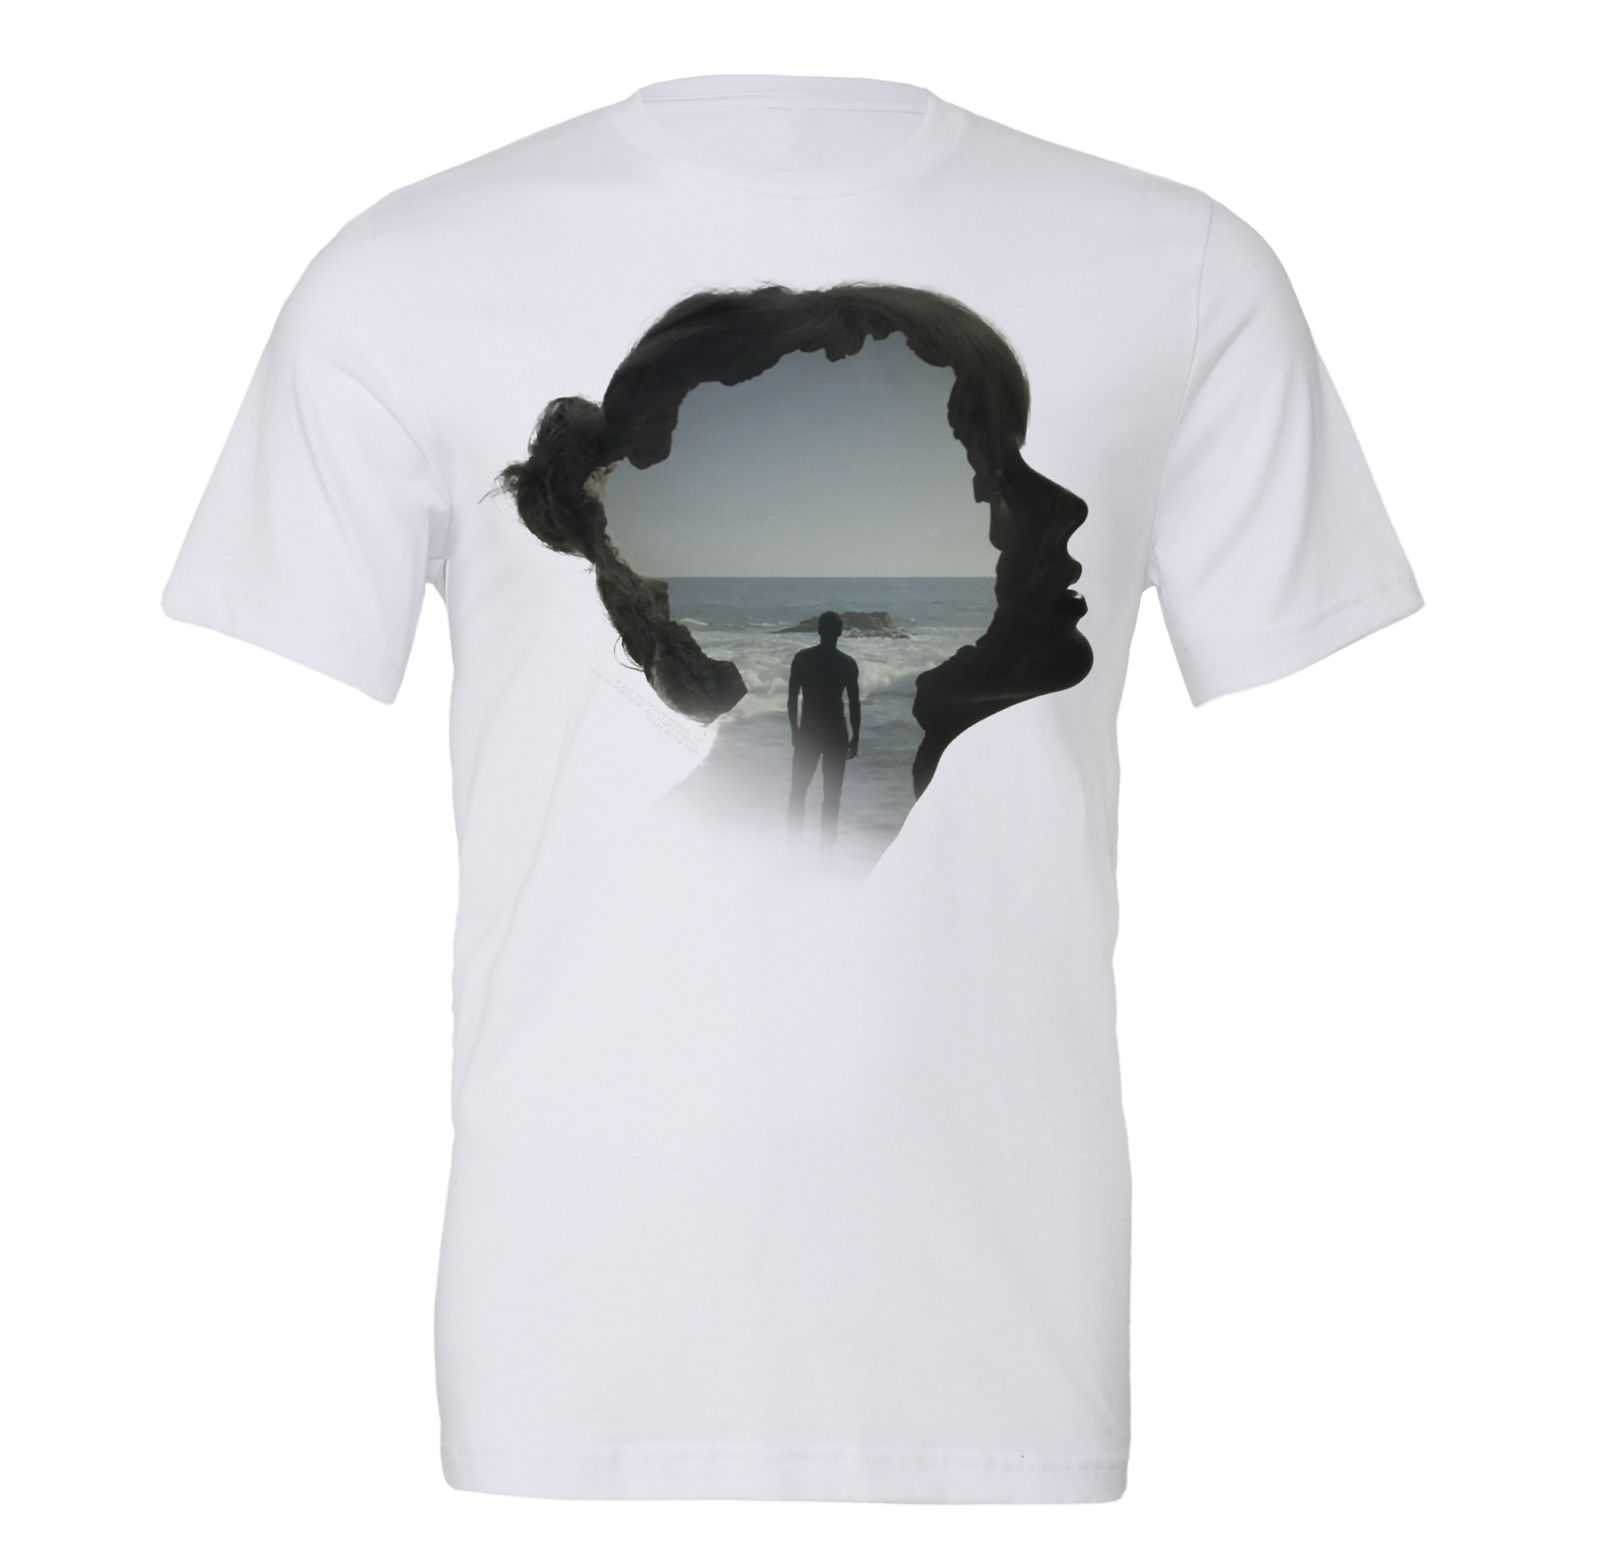 Check out the deal on White Face Ocean Tee at Taylor Swift Official Online Store ...1600 x 1567